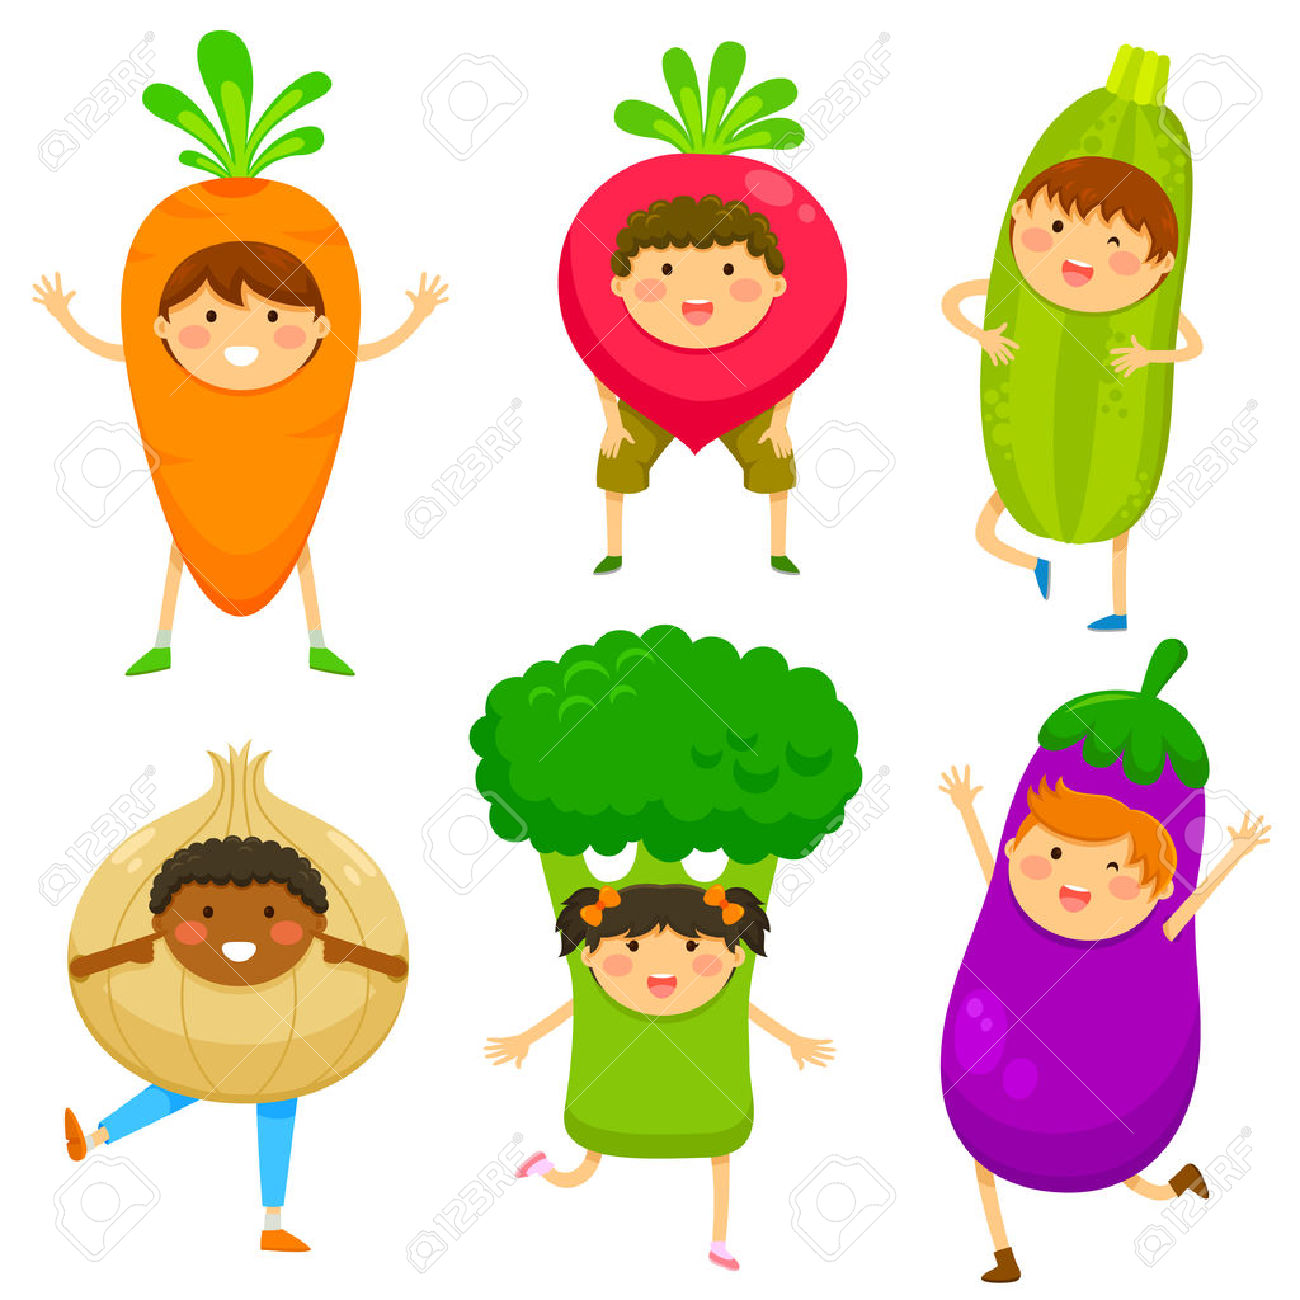 Children Dressed Like Vegetables Royalty Free Cliparts, Vectors.